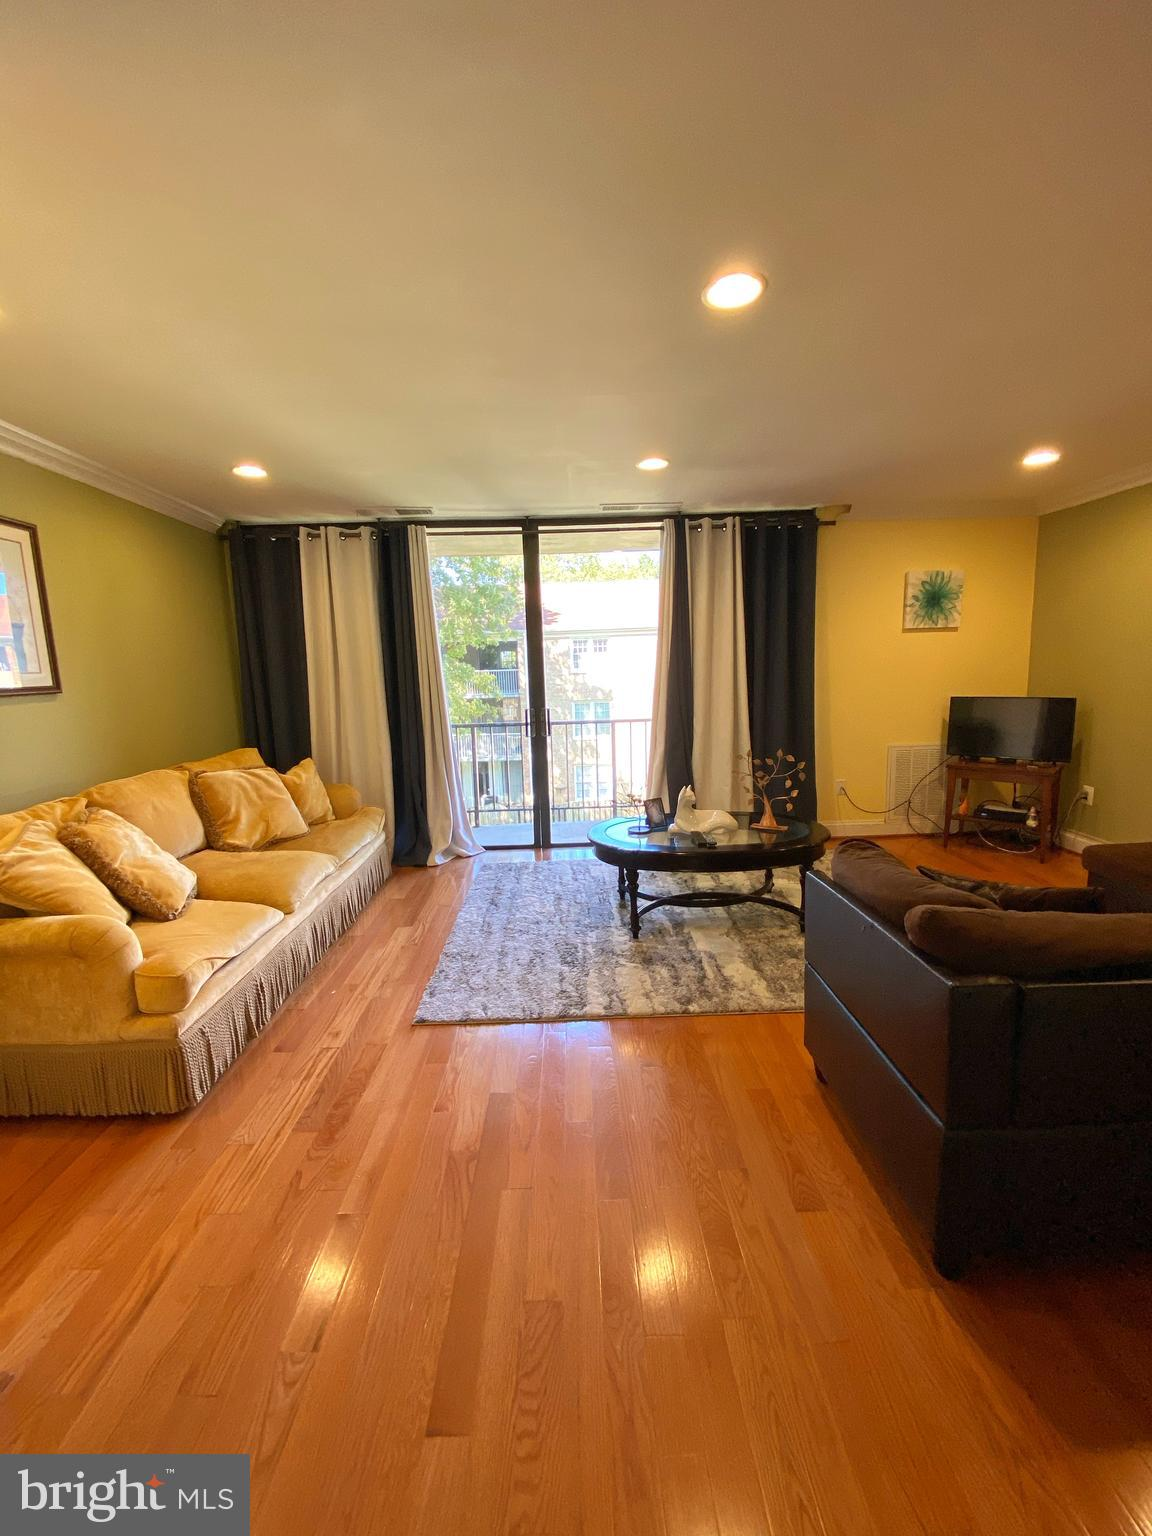 Renovate 3 bedroom condo with 2 full bathrooms. This is the BEST unit available now at a great price